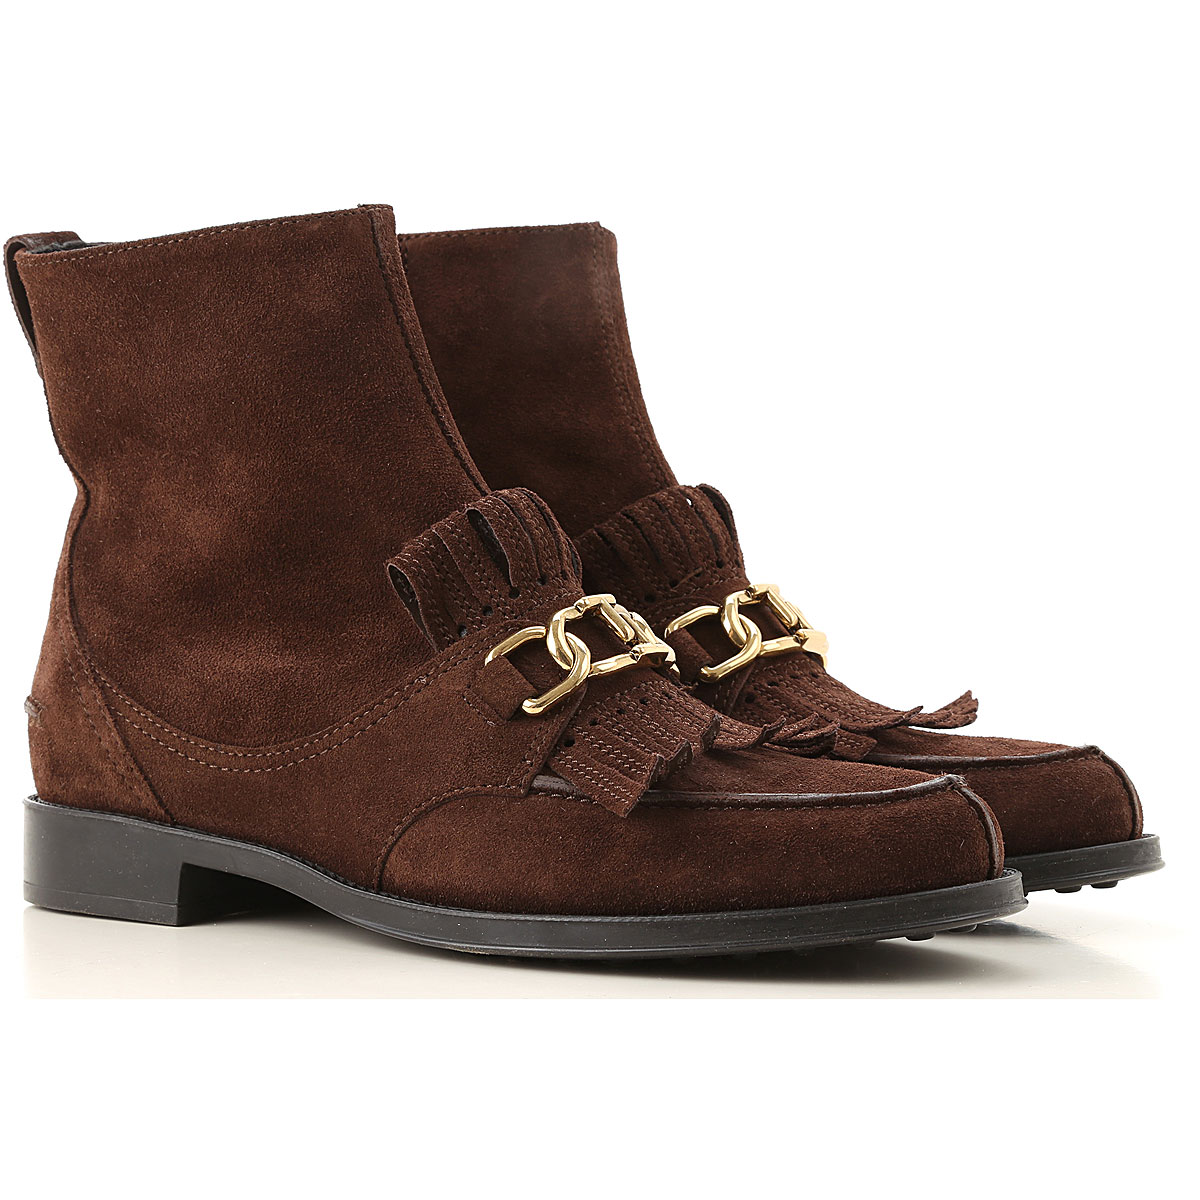 Tods Chelsea Boots for Women Dark Brown USA - GOOFASH